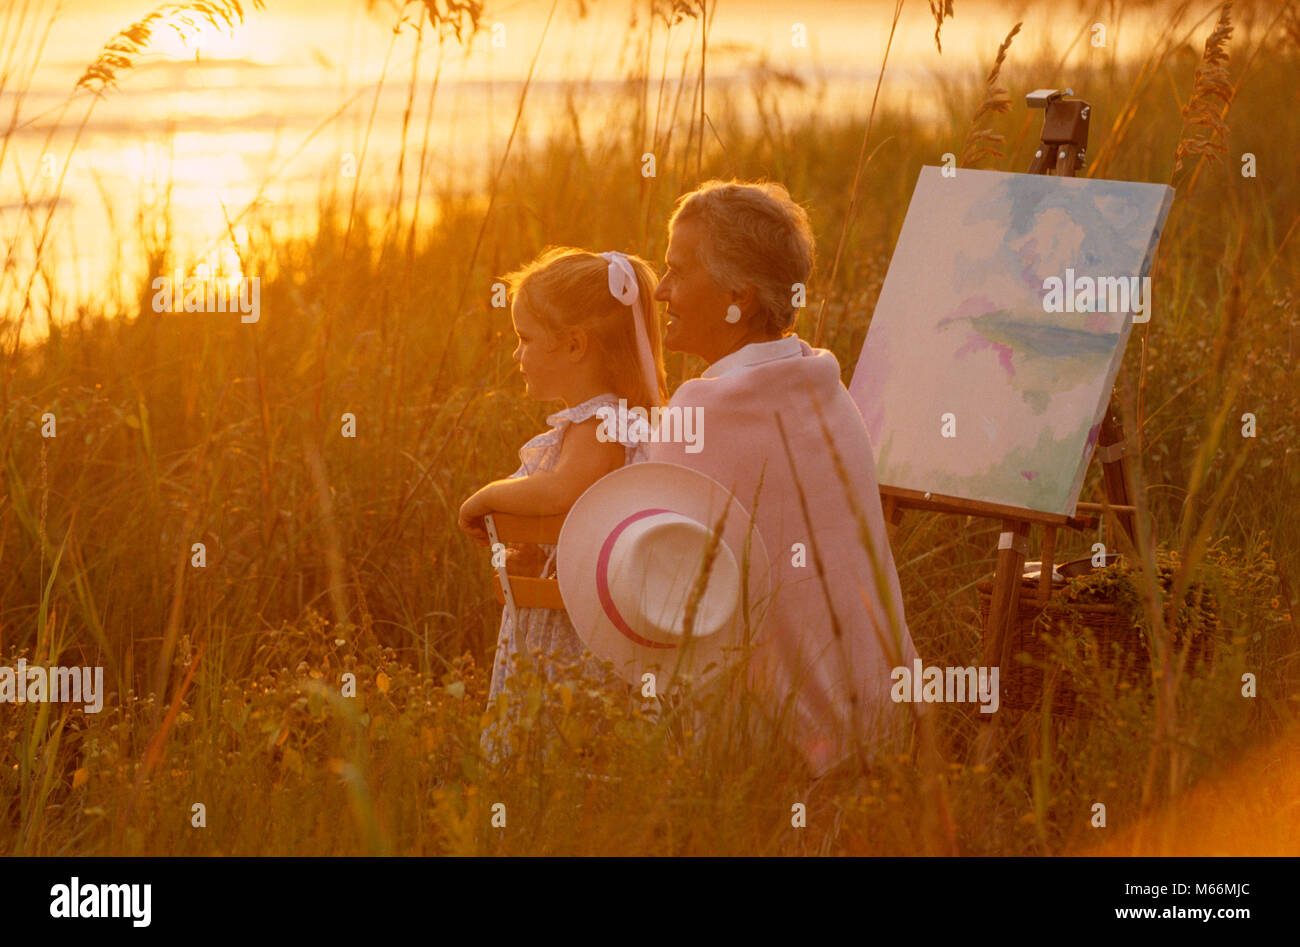 1990s WOMAN ARTIST PAINTER AND GRANDDAUGHTER WITH CANVAS ON EASEL BY THE BEACH AT SUNSET - kj12541 LAF002 HARS PAINT - Stock Image